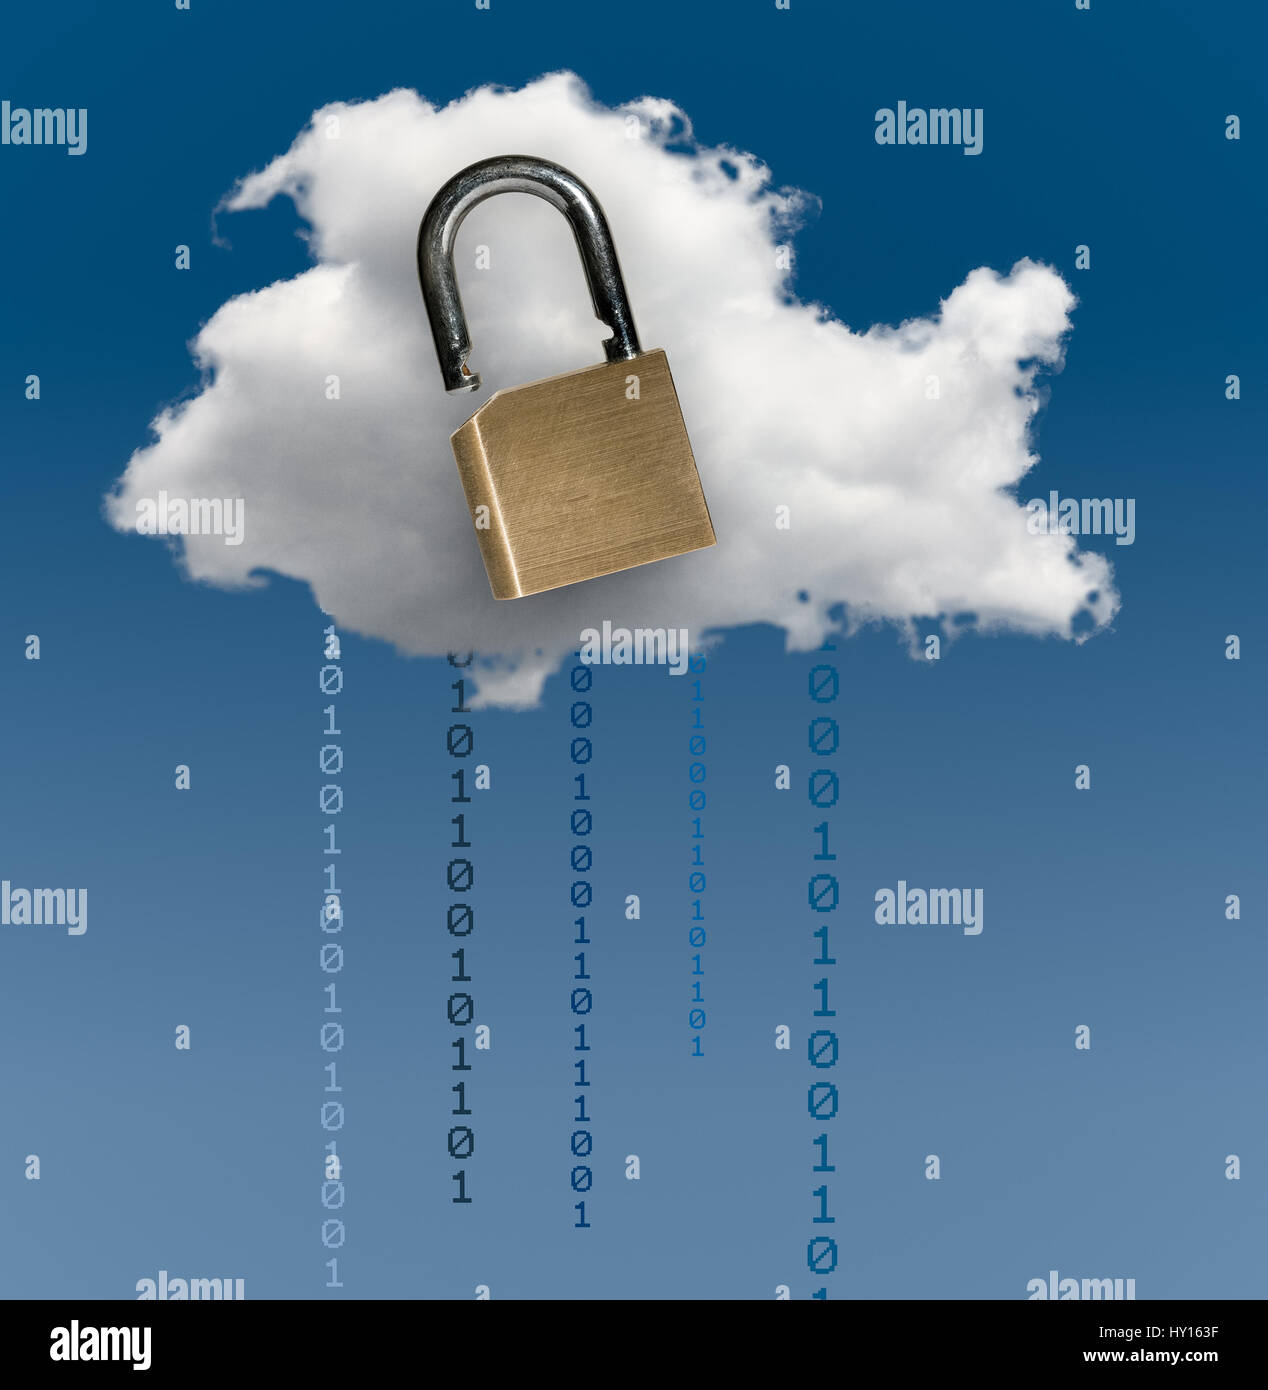 Concept image for cloud computing cyber crime security and secure online applications showing secure or insecure - Stock Image